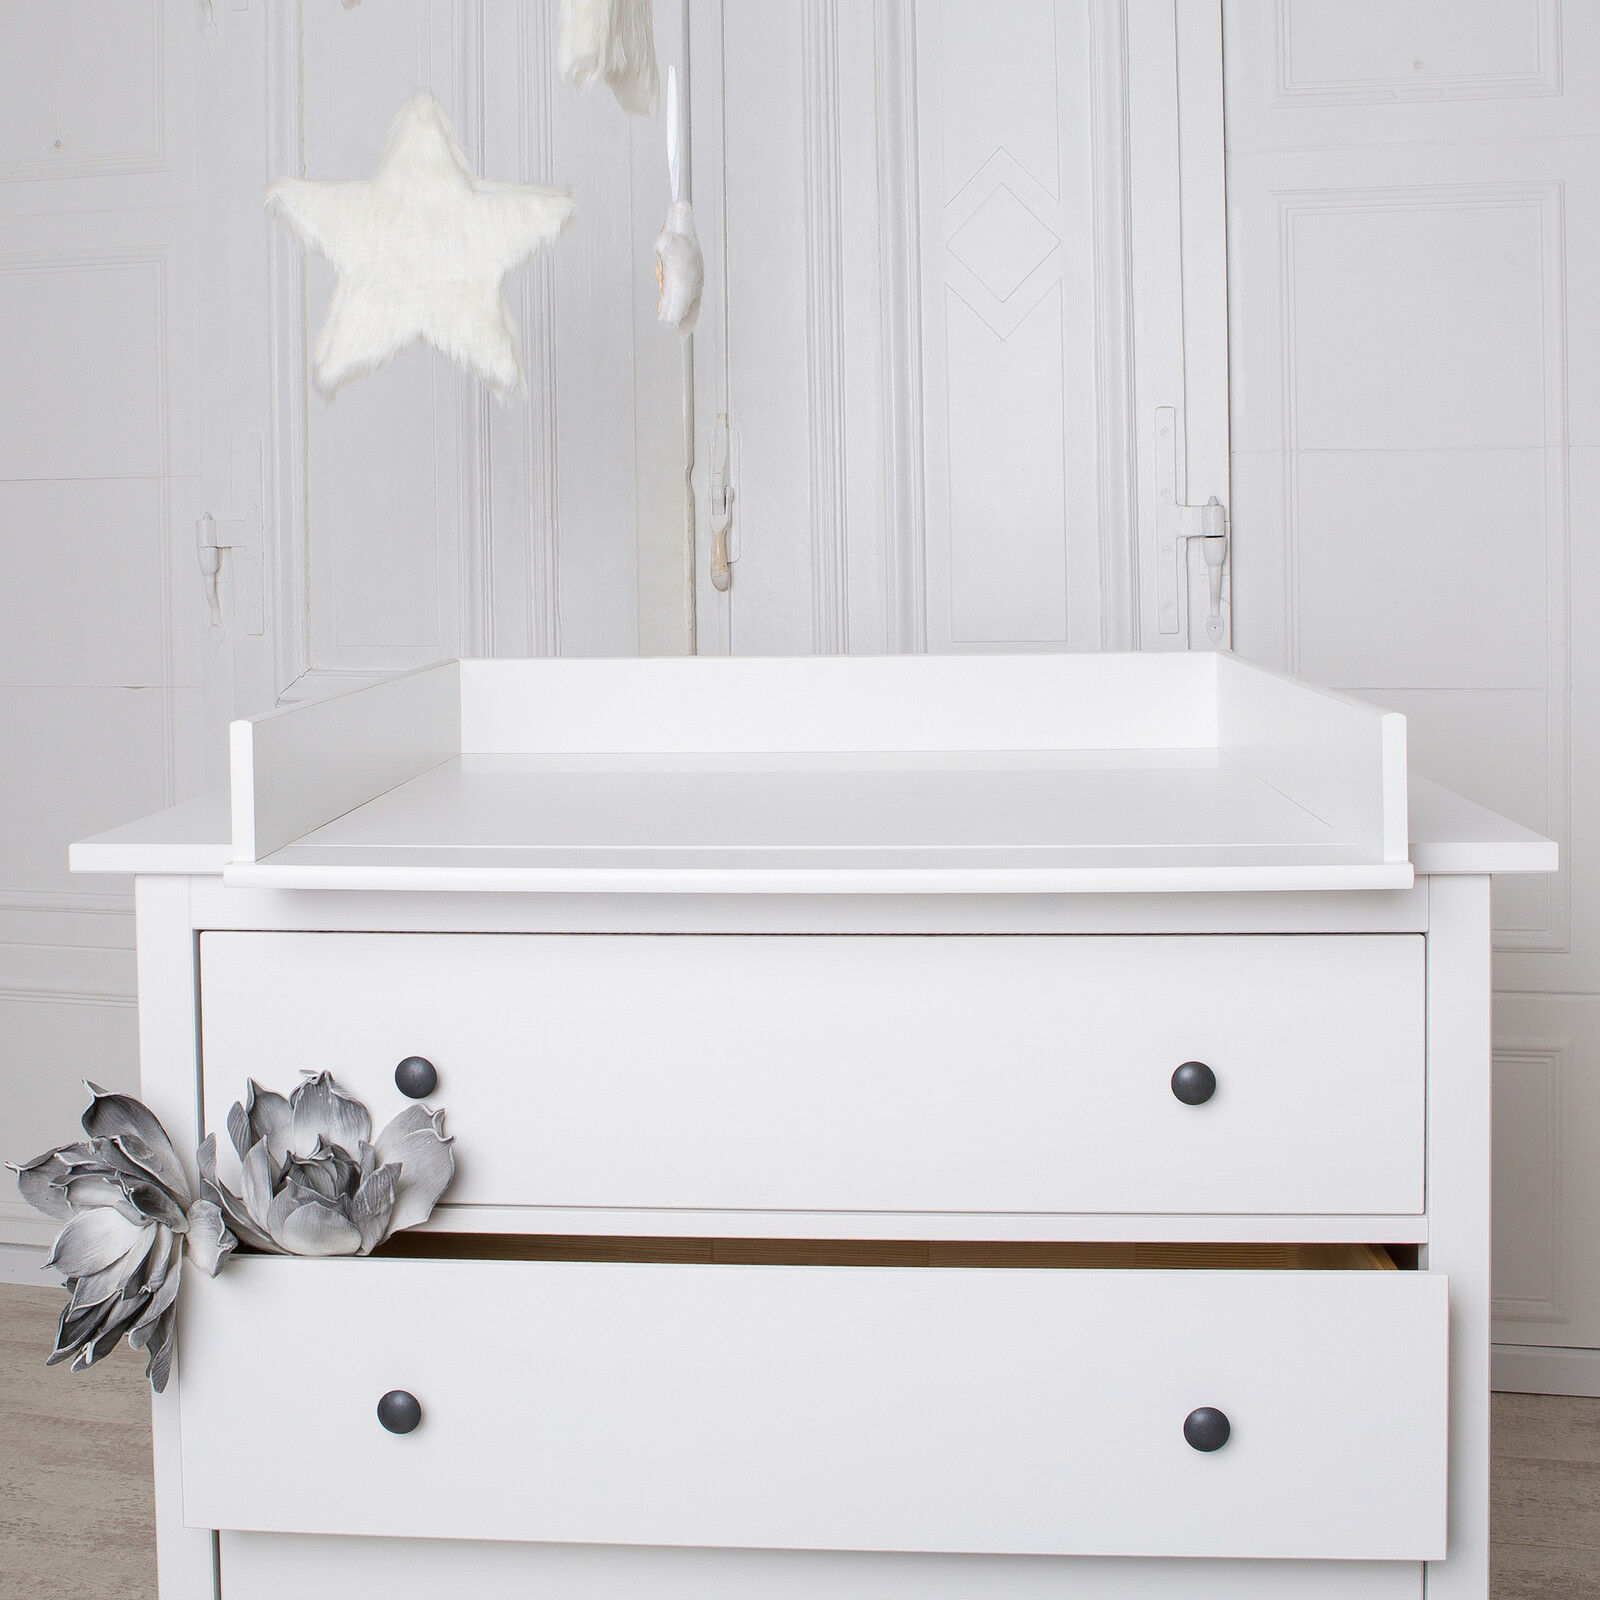 Commode Ikea Suisse Bords Arrondis Quotr Quot Plan à Langer Pour Tous Les Commodes